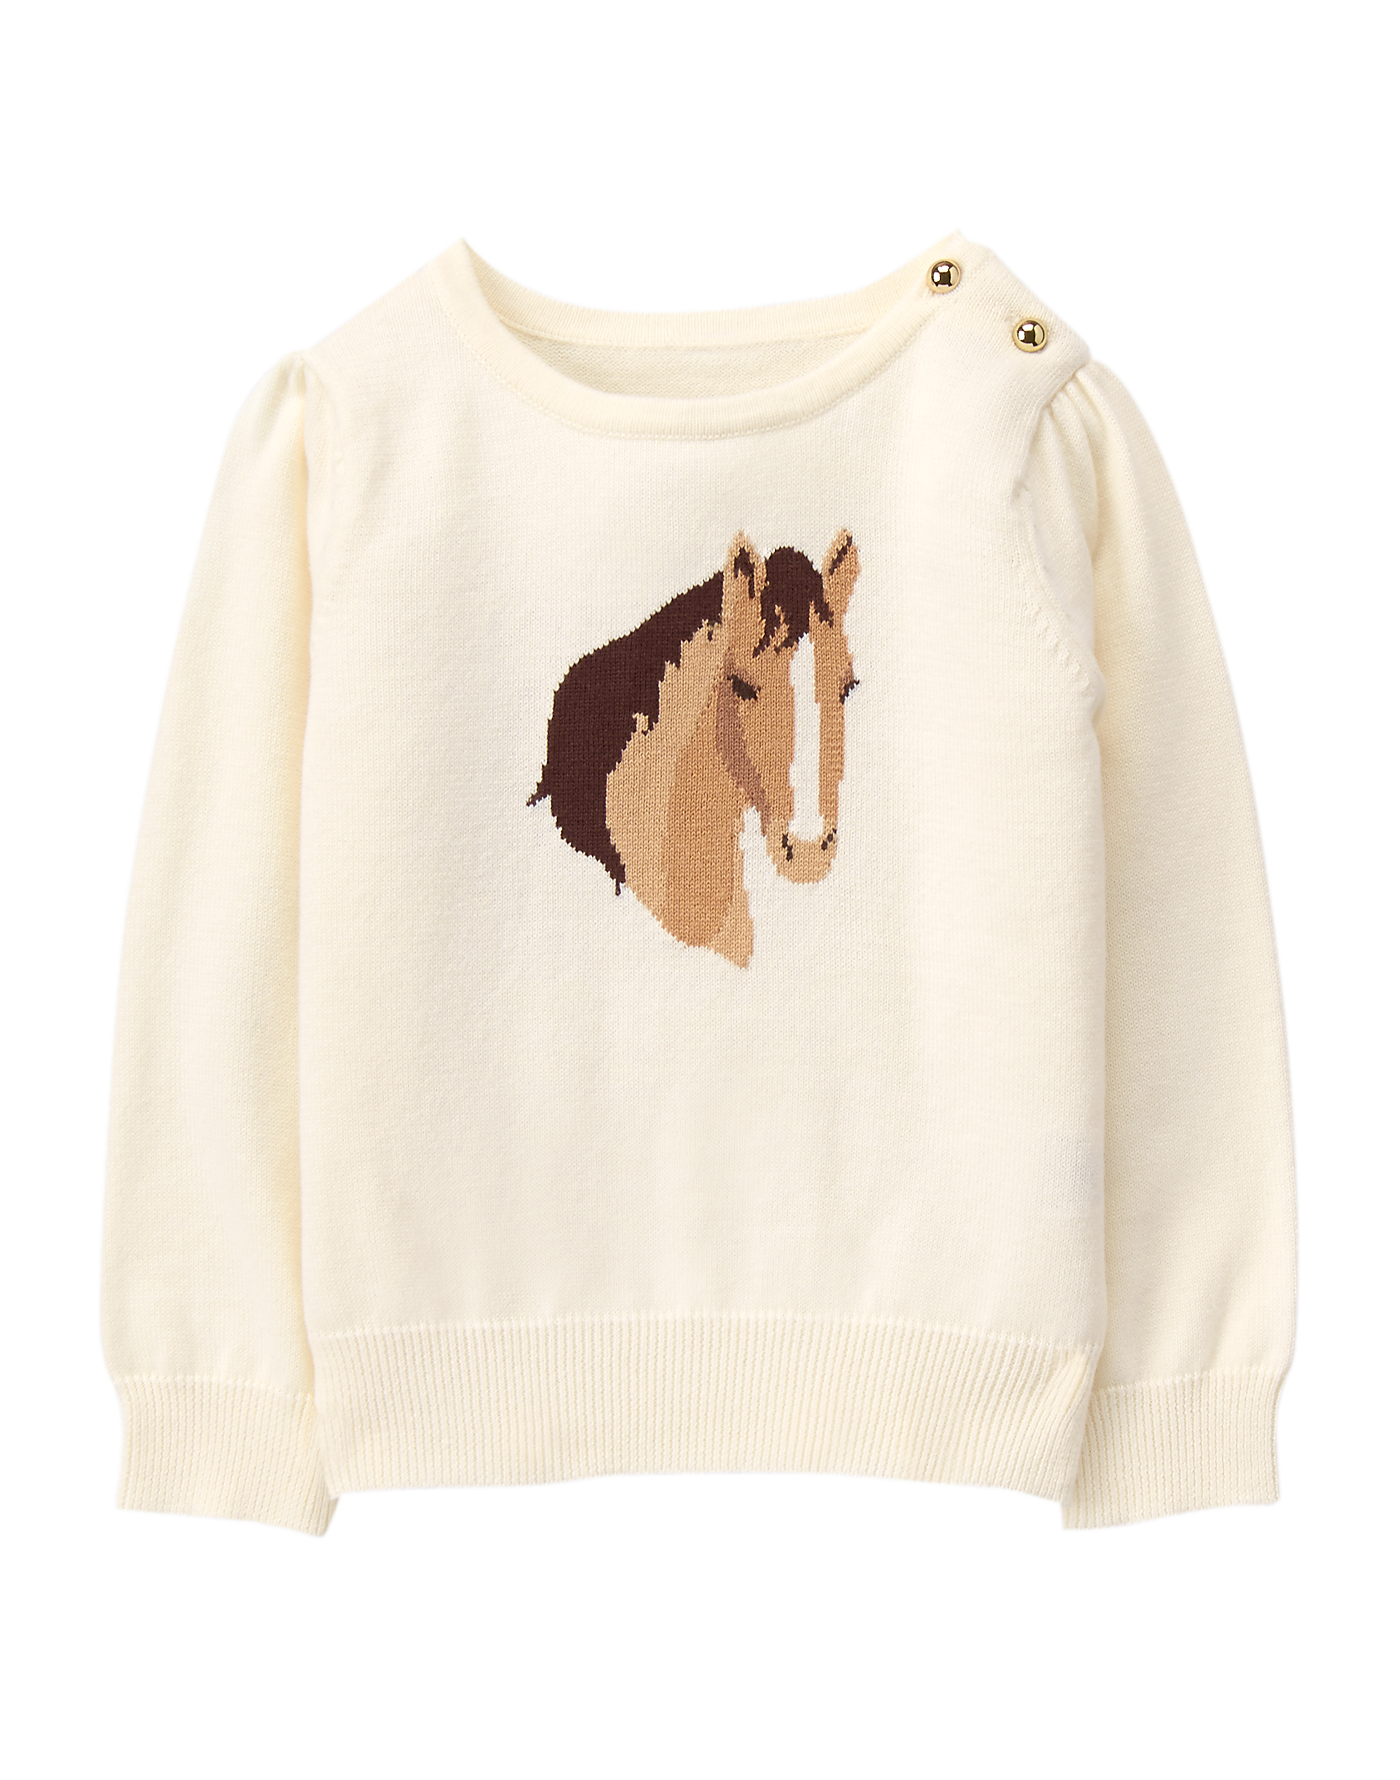 7f791b4f9e91a0 horse sweater at Janie and Jack's 18-24 mos. | ارنوب | Girls ...